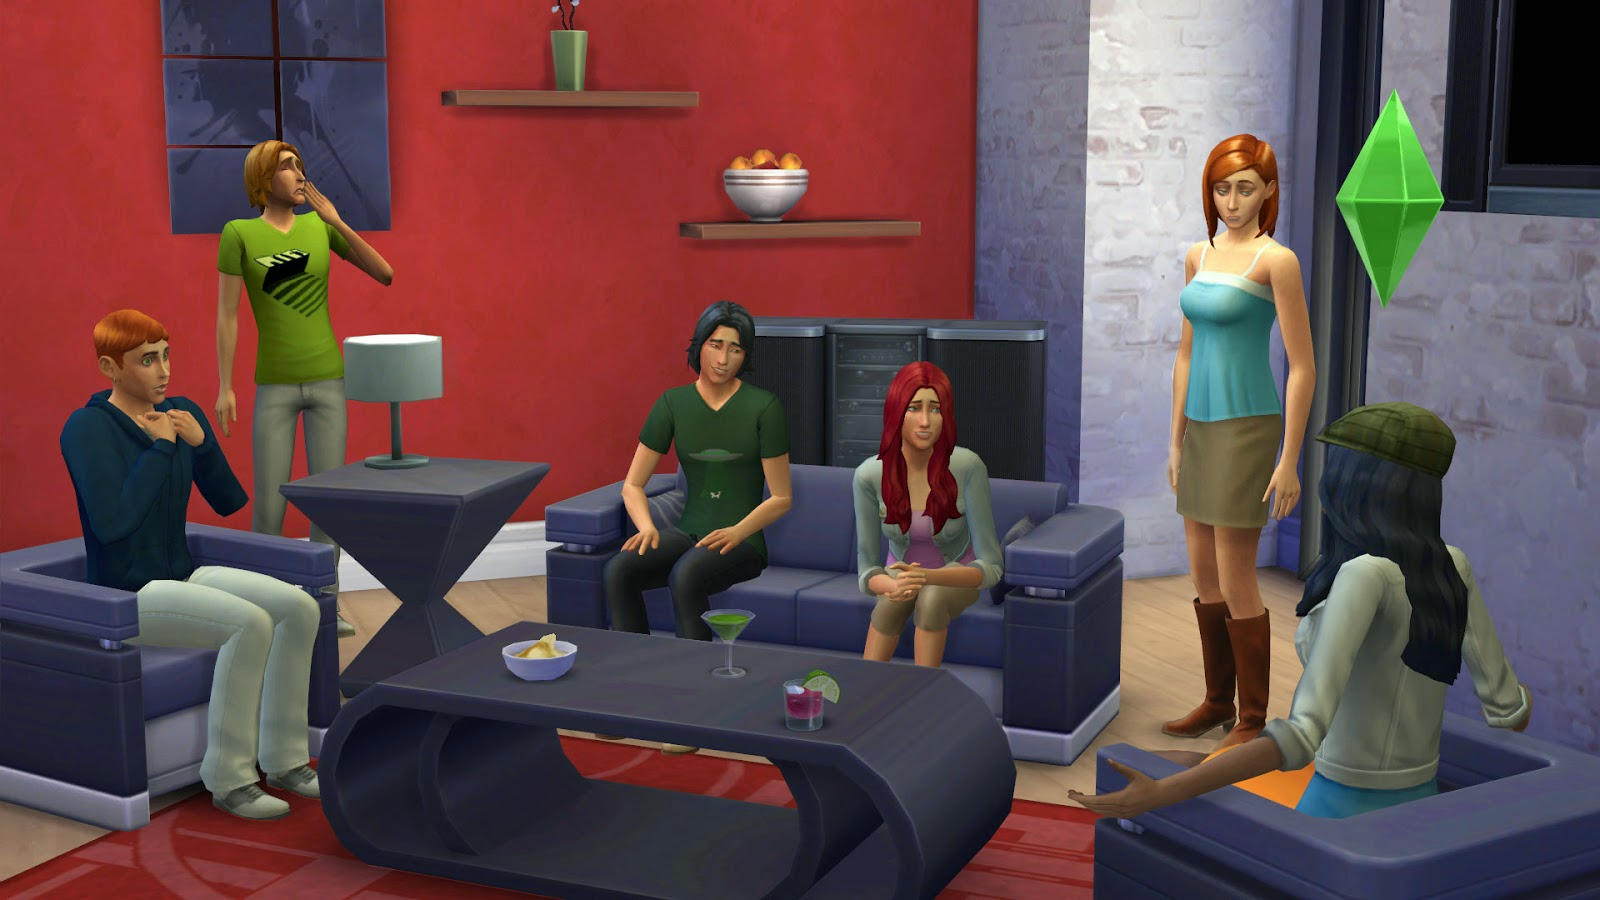 The sims 4 Download Full Version